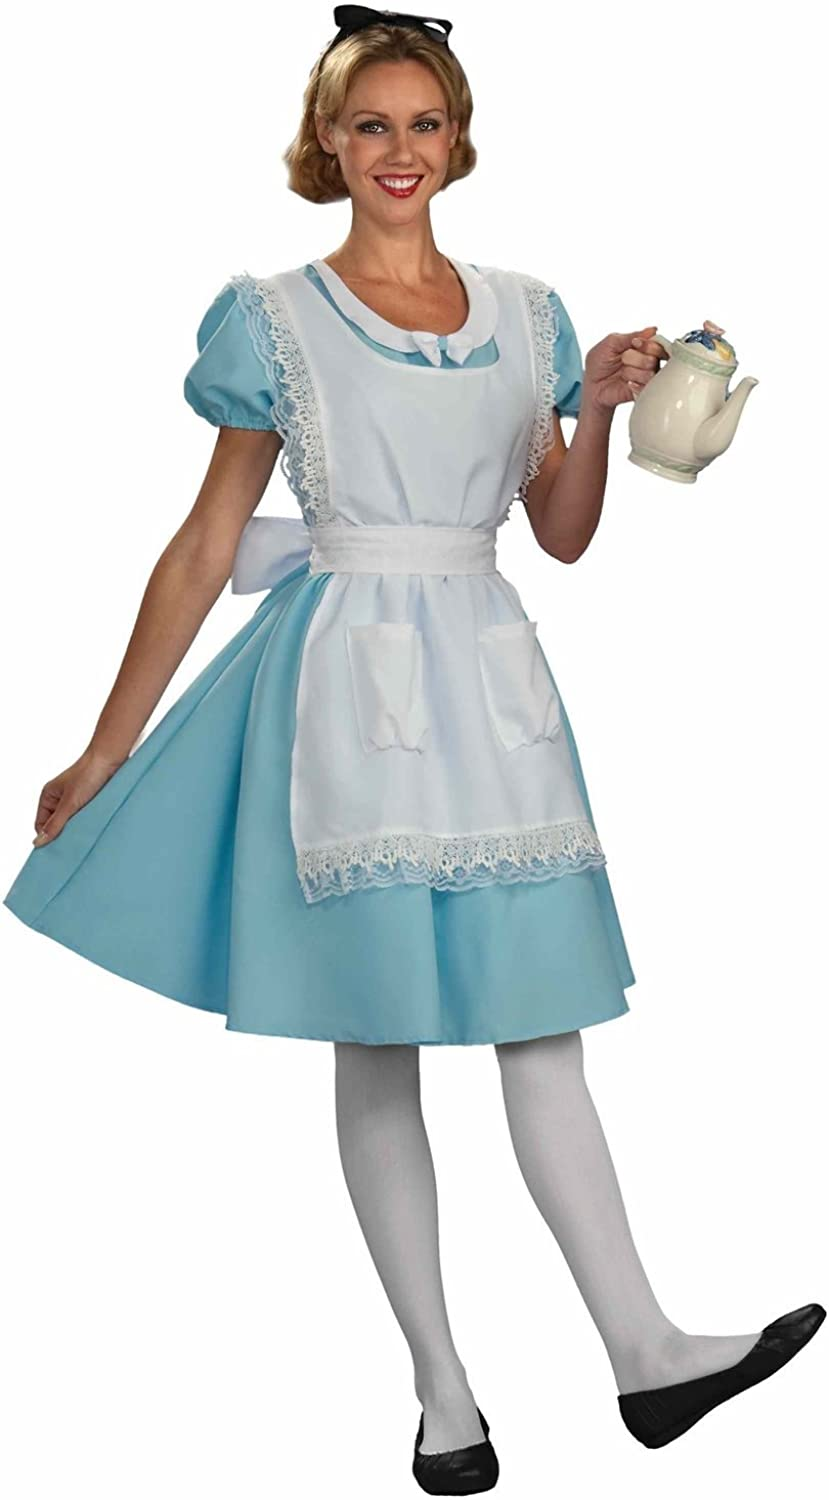 Amazon Com Forum Alice In Wonderland Alice Costume Clothing So, will that be ok. forum alice in wonderland alice costume